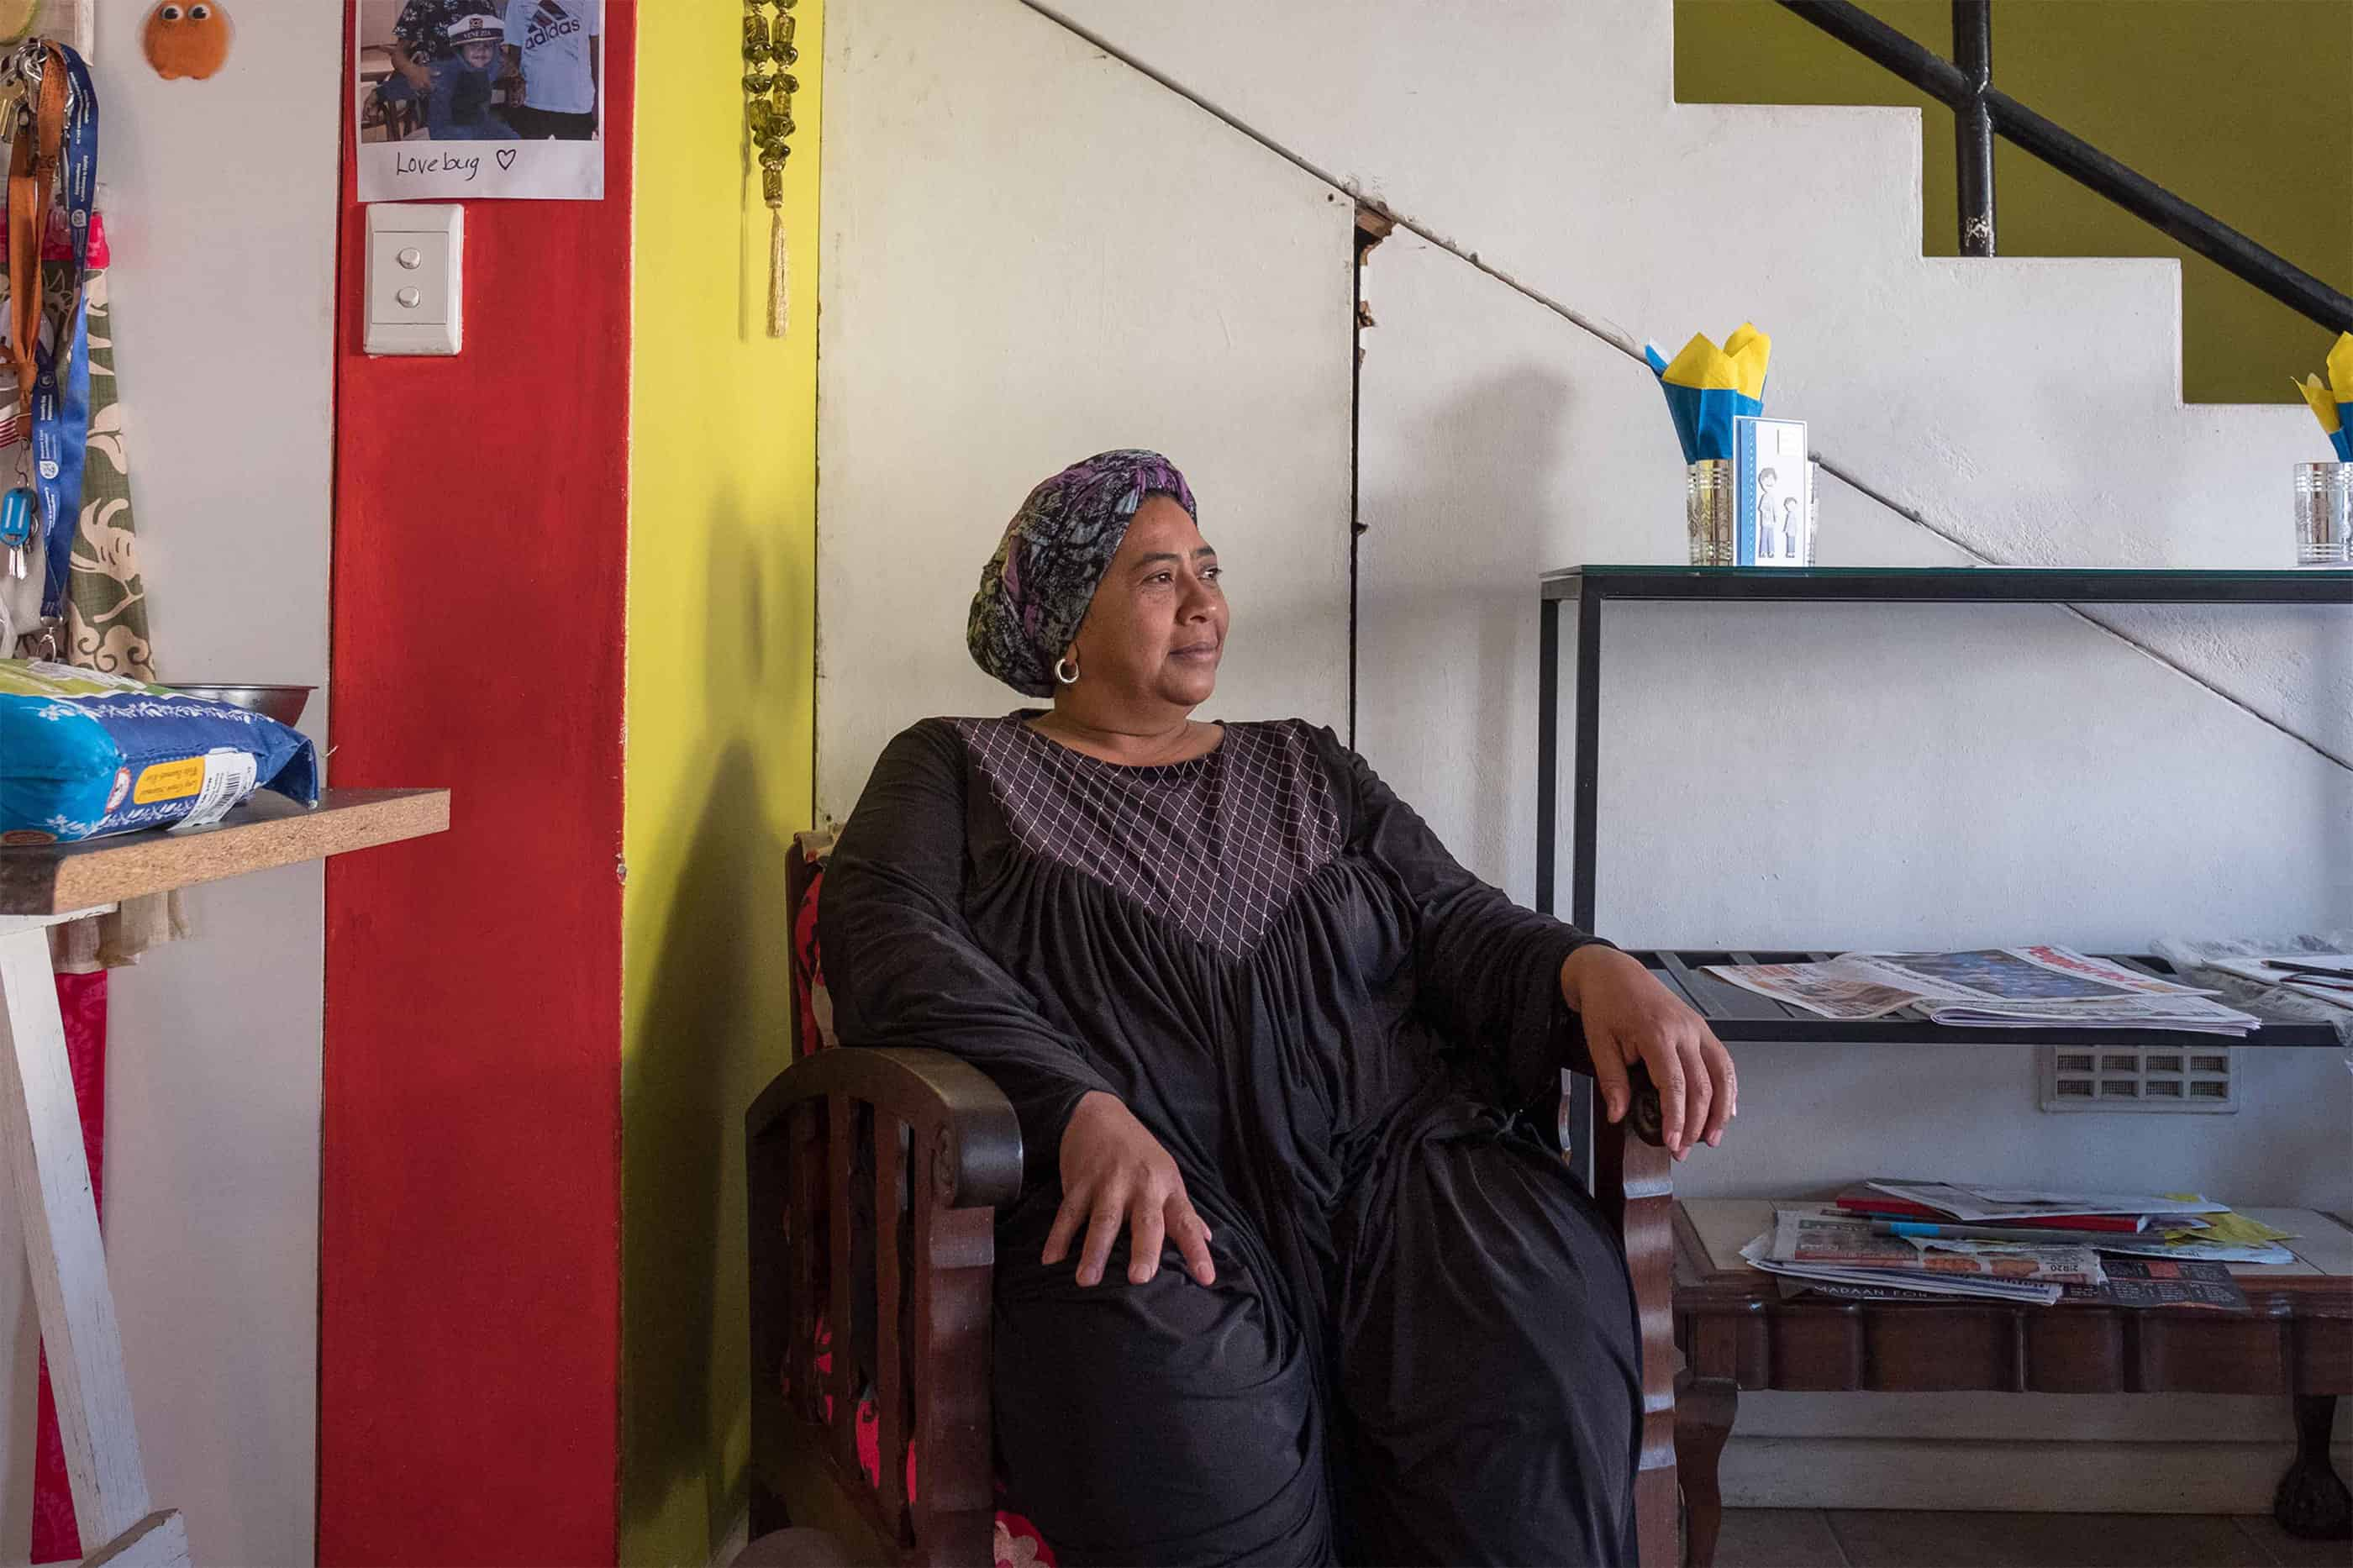 17 May 2019: Fairuz Achmat-Basardin at her home in District Six. She remembers children of all religions frequenting the mosque when she was growing up there.